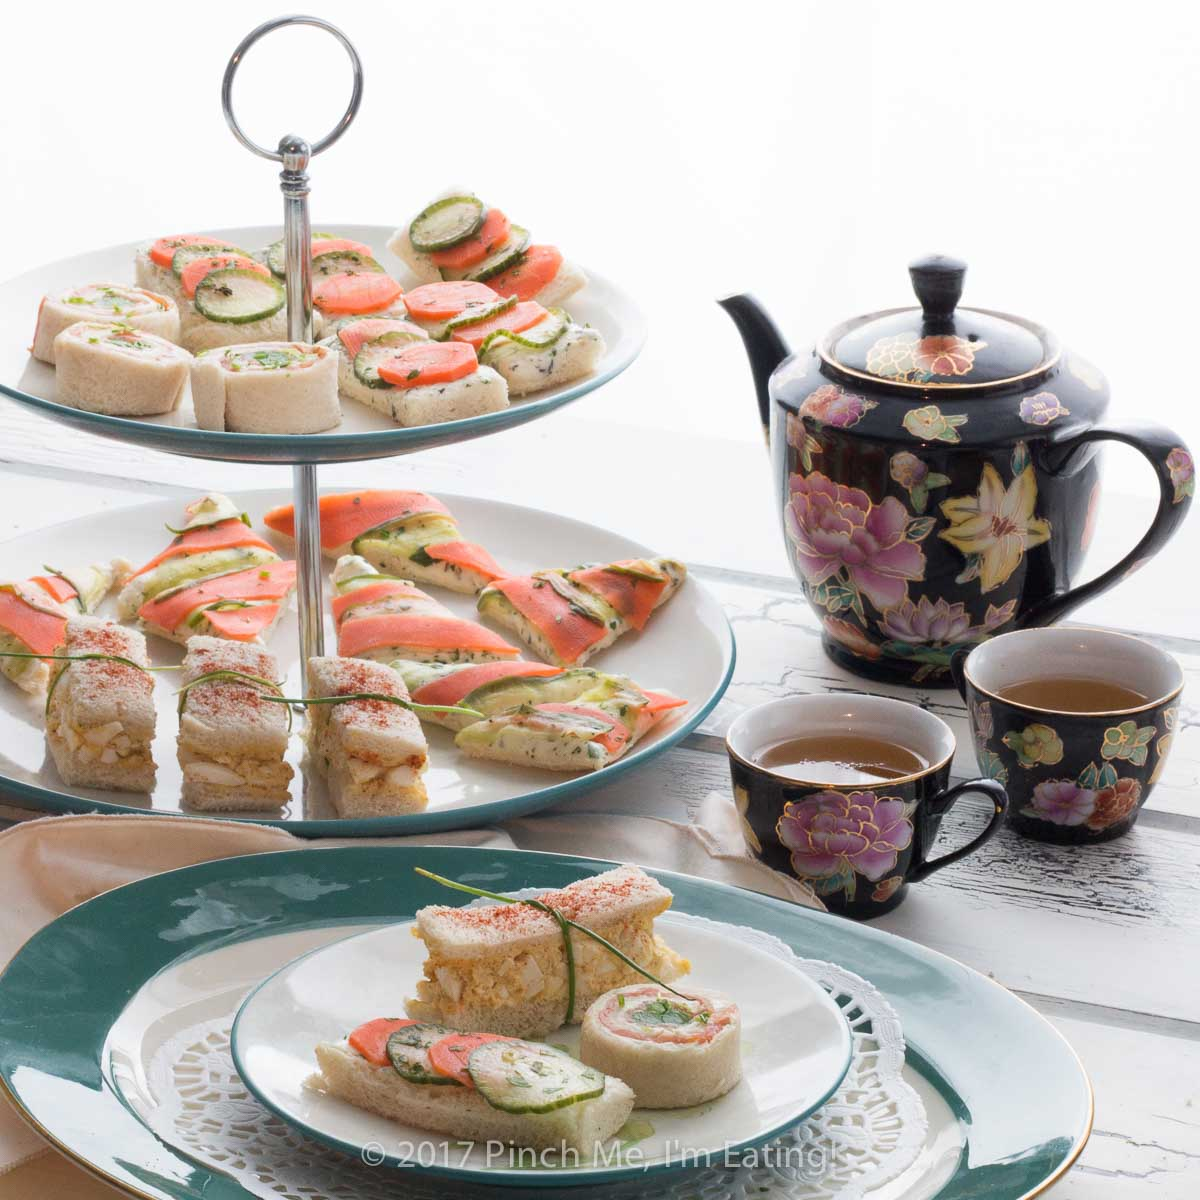 English Tea Party Decorations: Pinch Me, I'm Eating